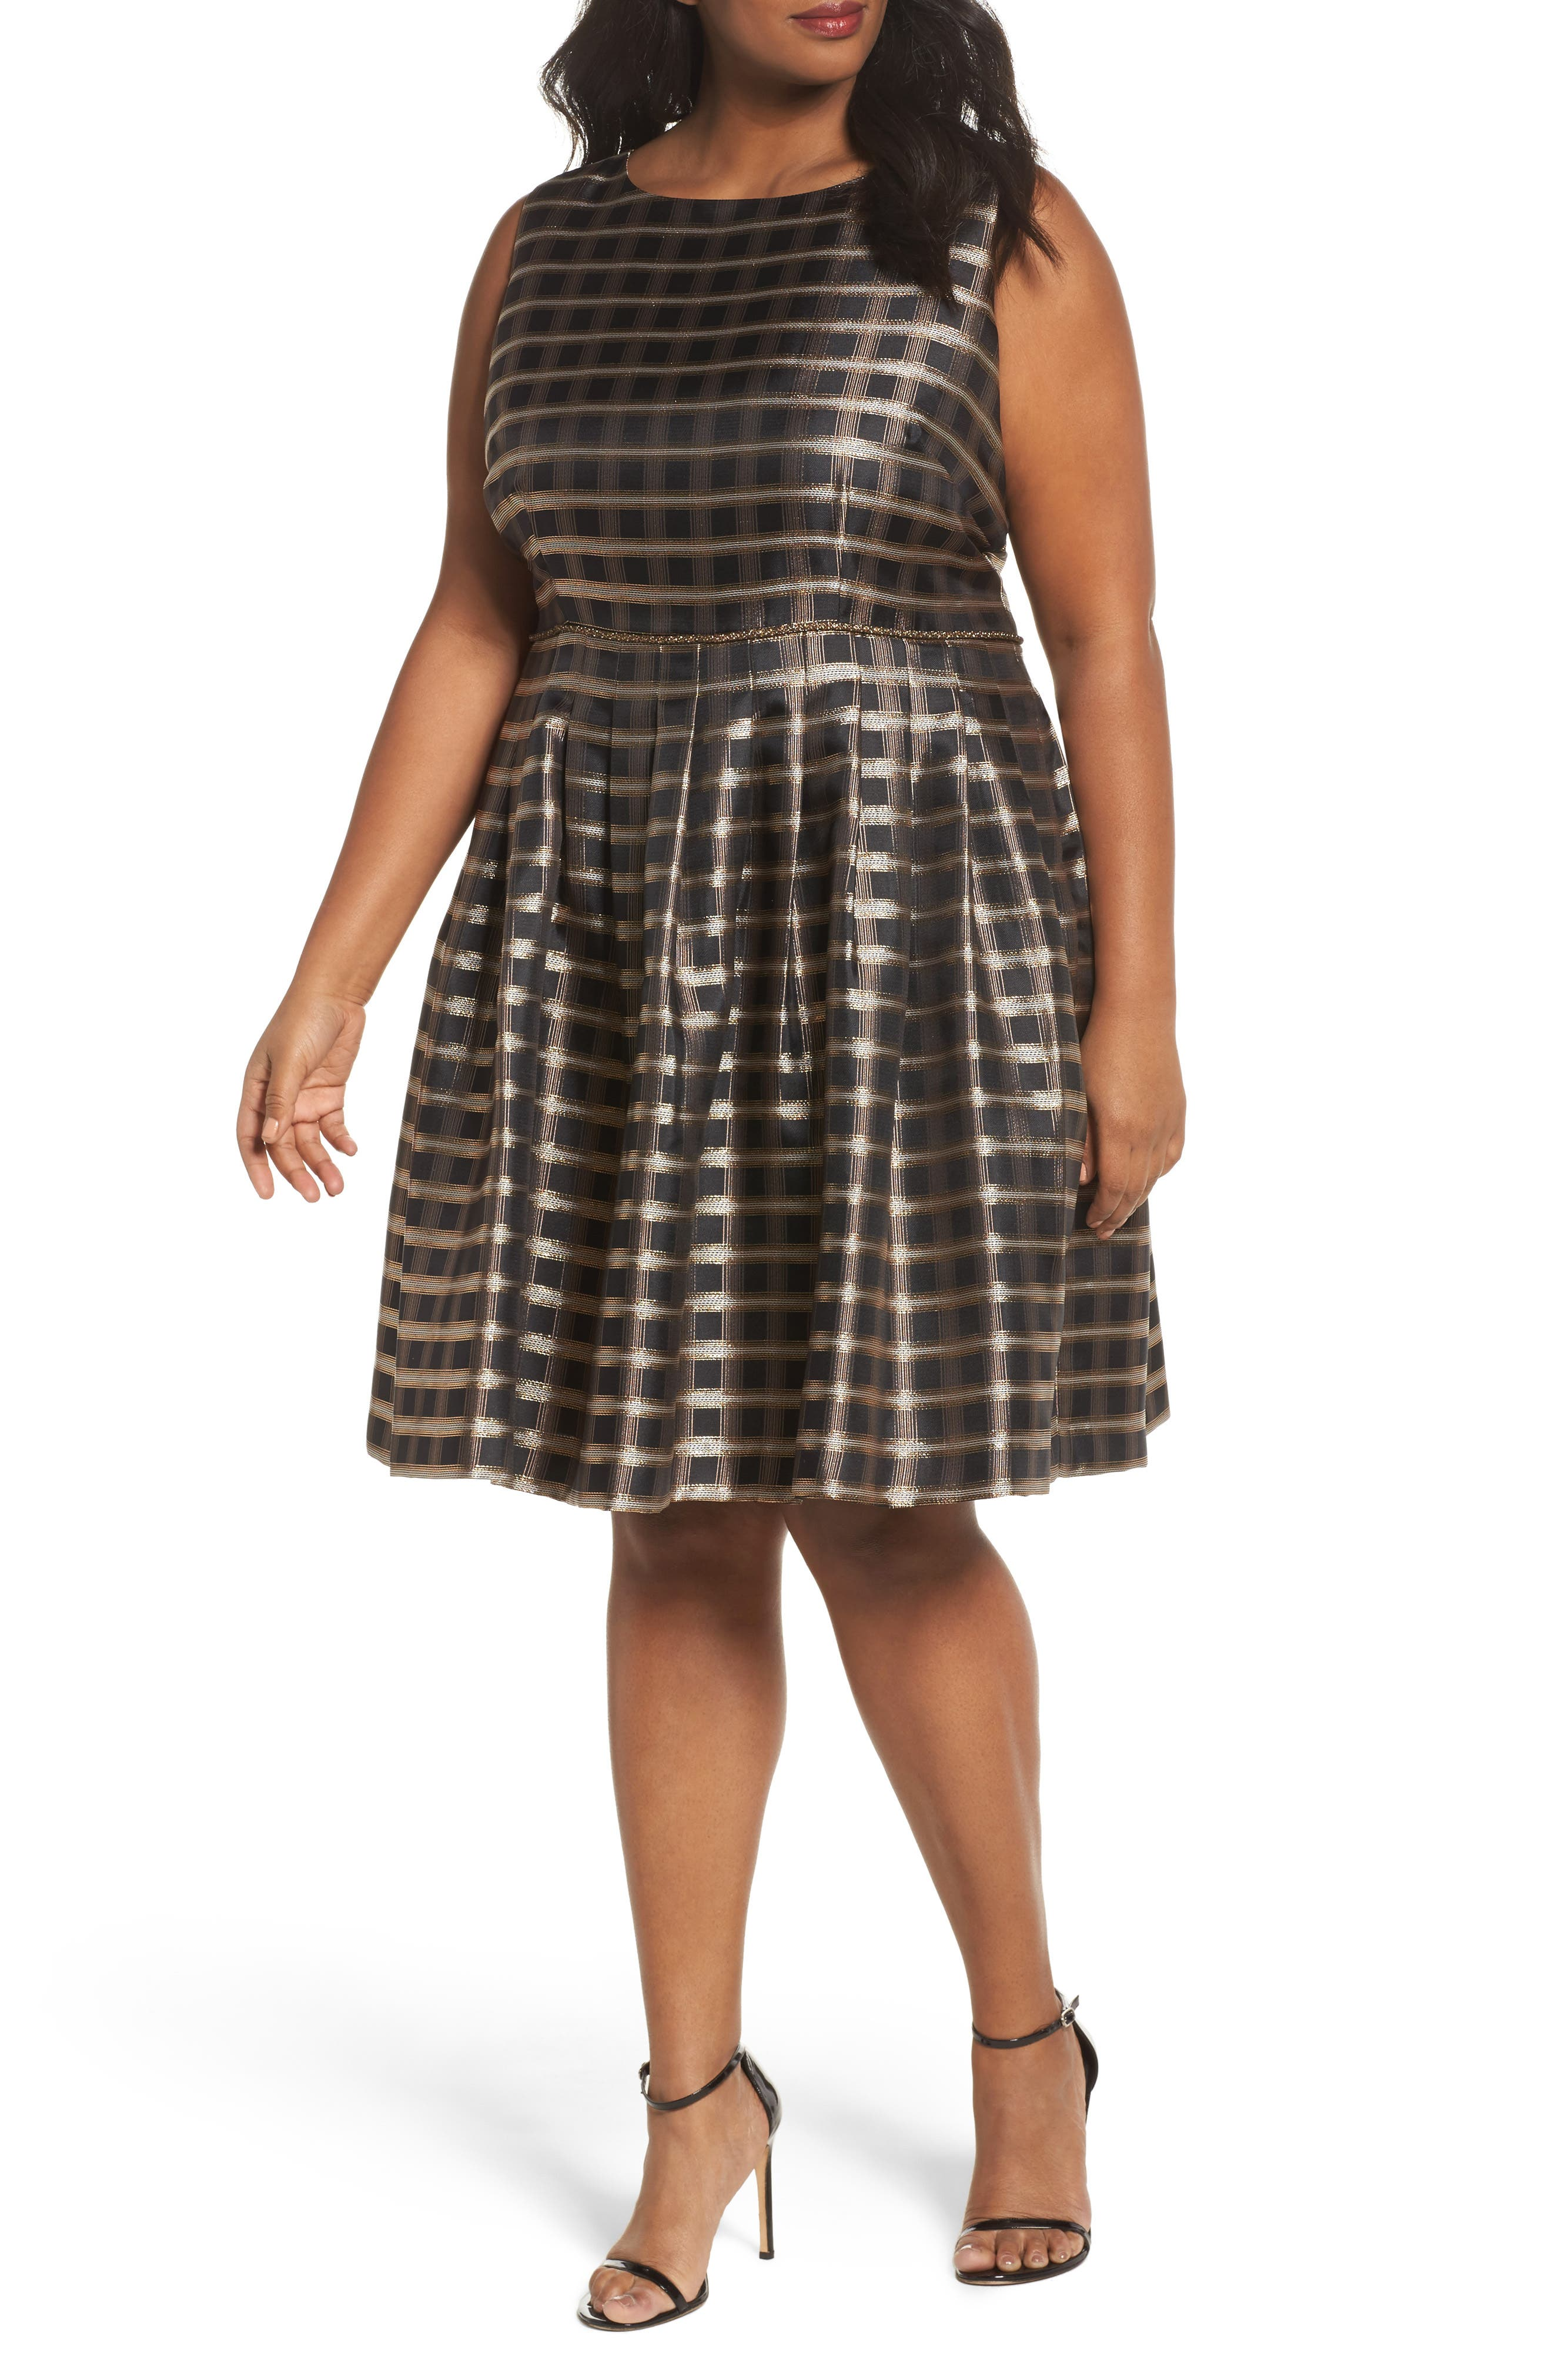 Tahari Metallic Jacquard Fit & Flare Dress (Plus Size)